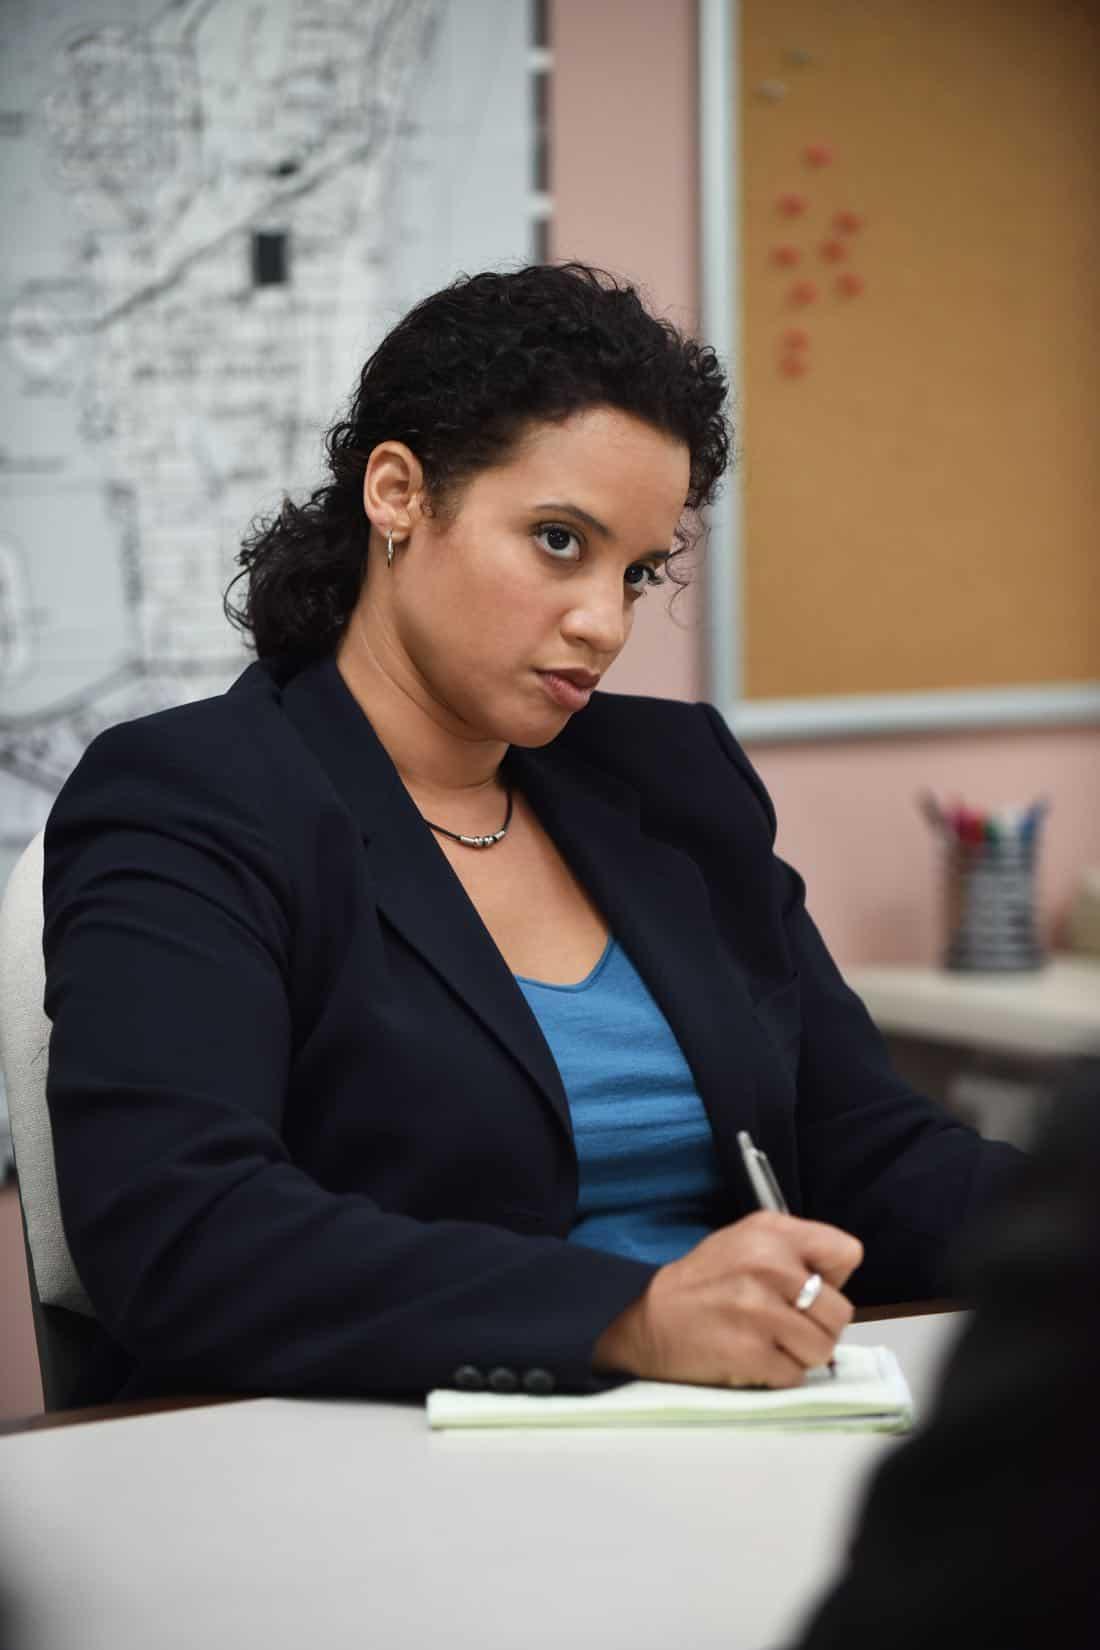 """THE ASSASSINATION OF GIANNI VERSACE: AMERICAN CRIME STORY """"Manhunt"""" Episode 2 (Airs Wednesday. January 24, 10:00 p.m. e/p) -- Pictured: Dascha Polanco as Lori. CR: Ray Mickshaw/FX"""